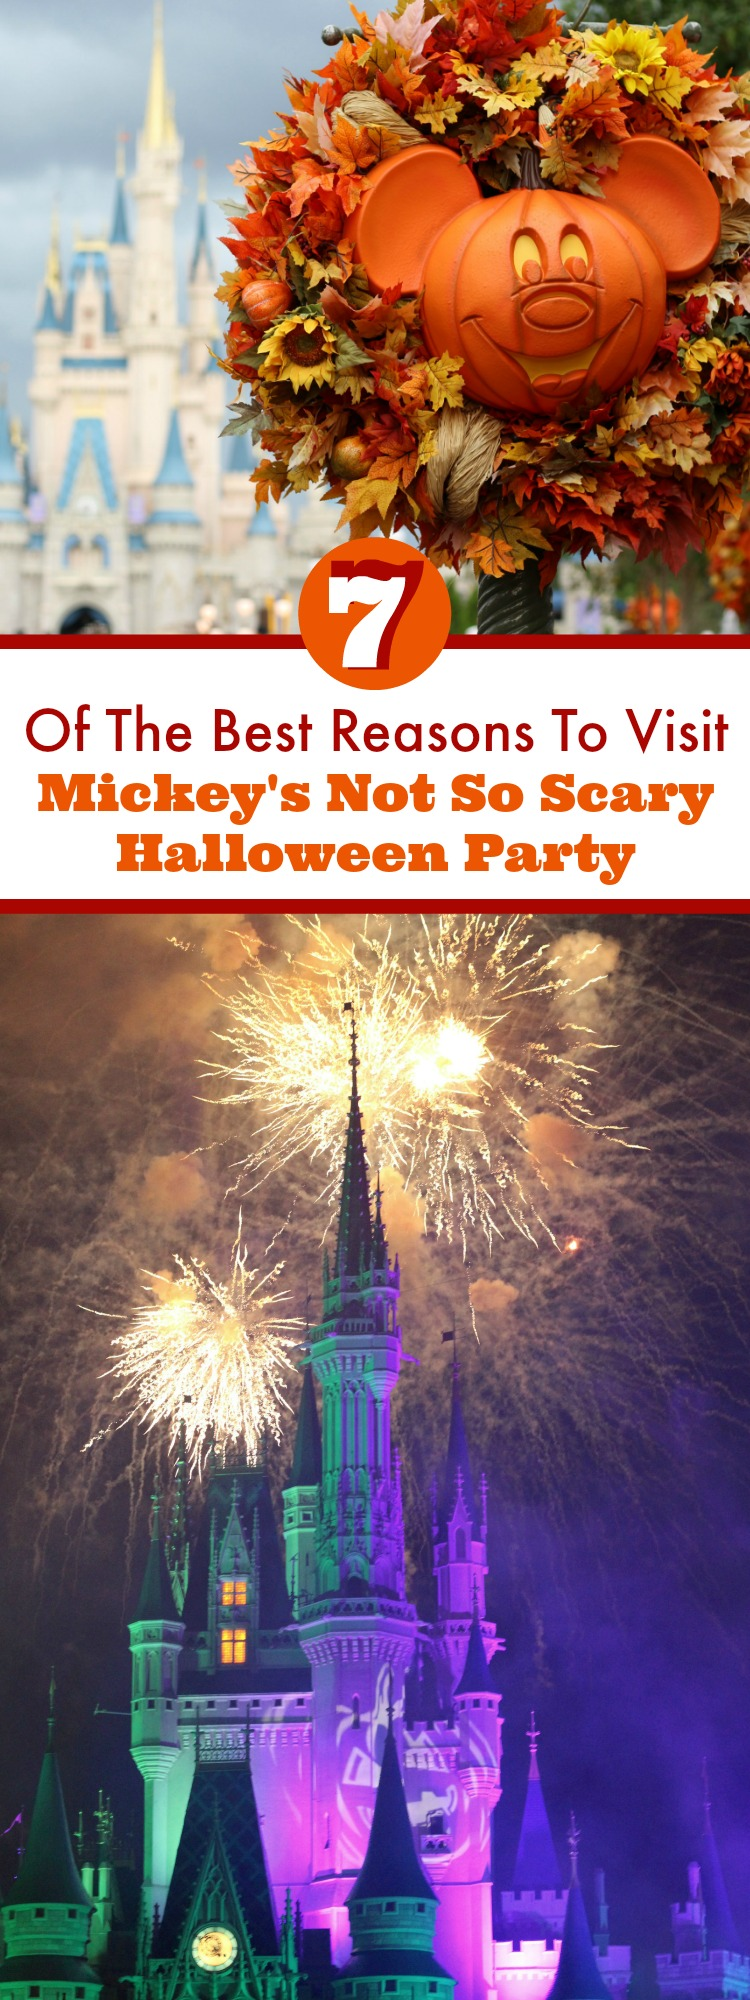 7 of the best reasons to visit Mickey's Not So Scary Halloween Party